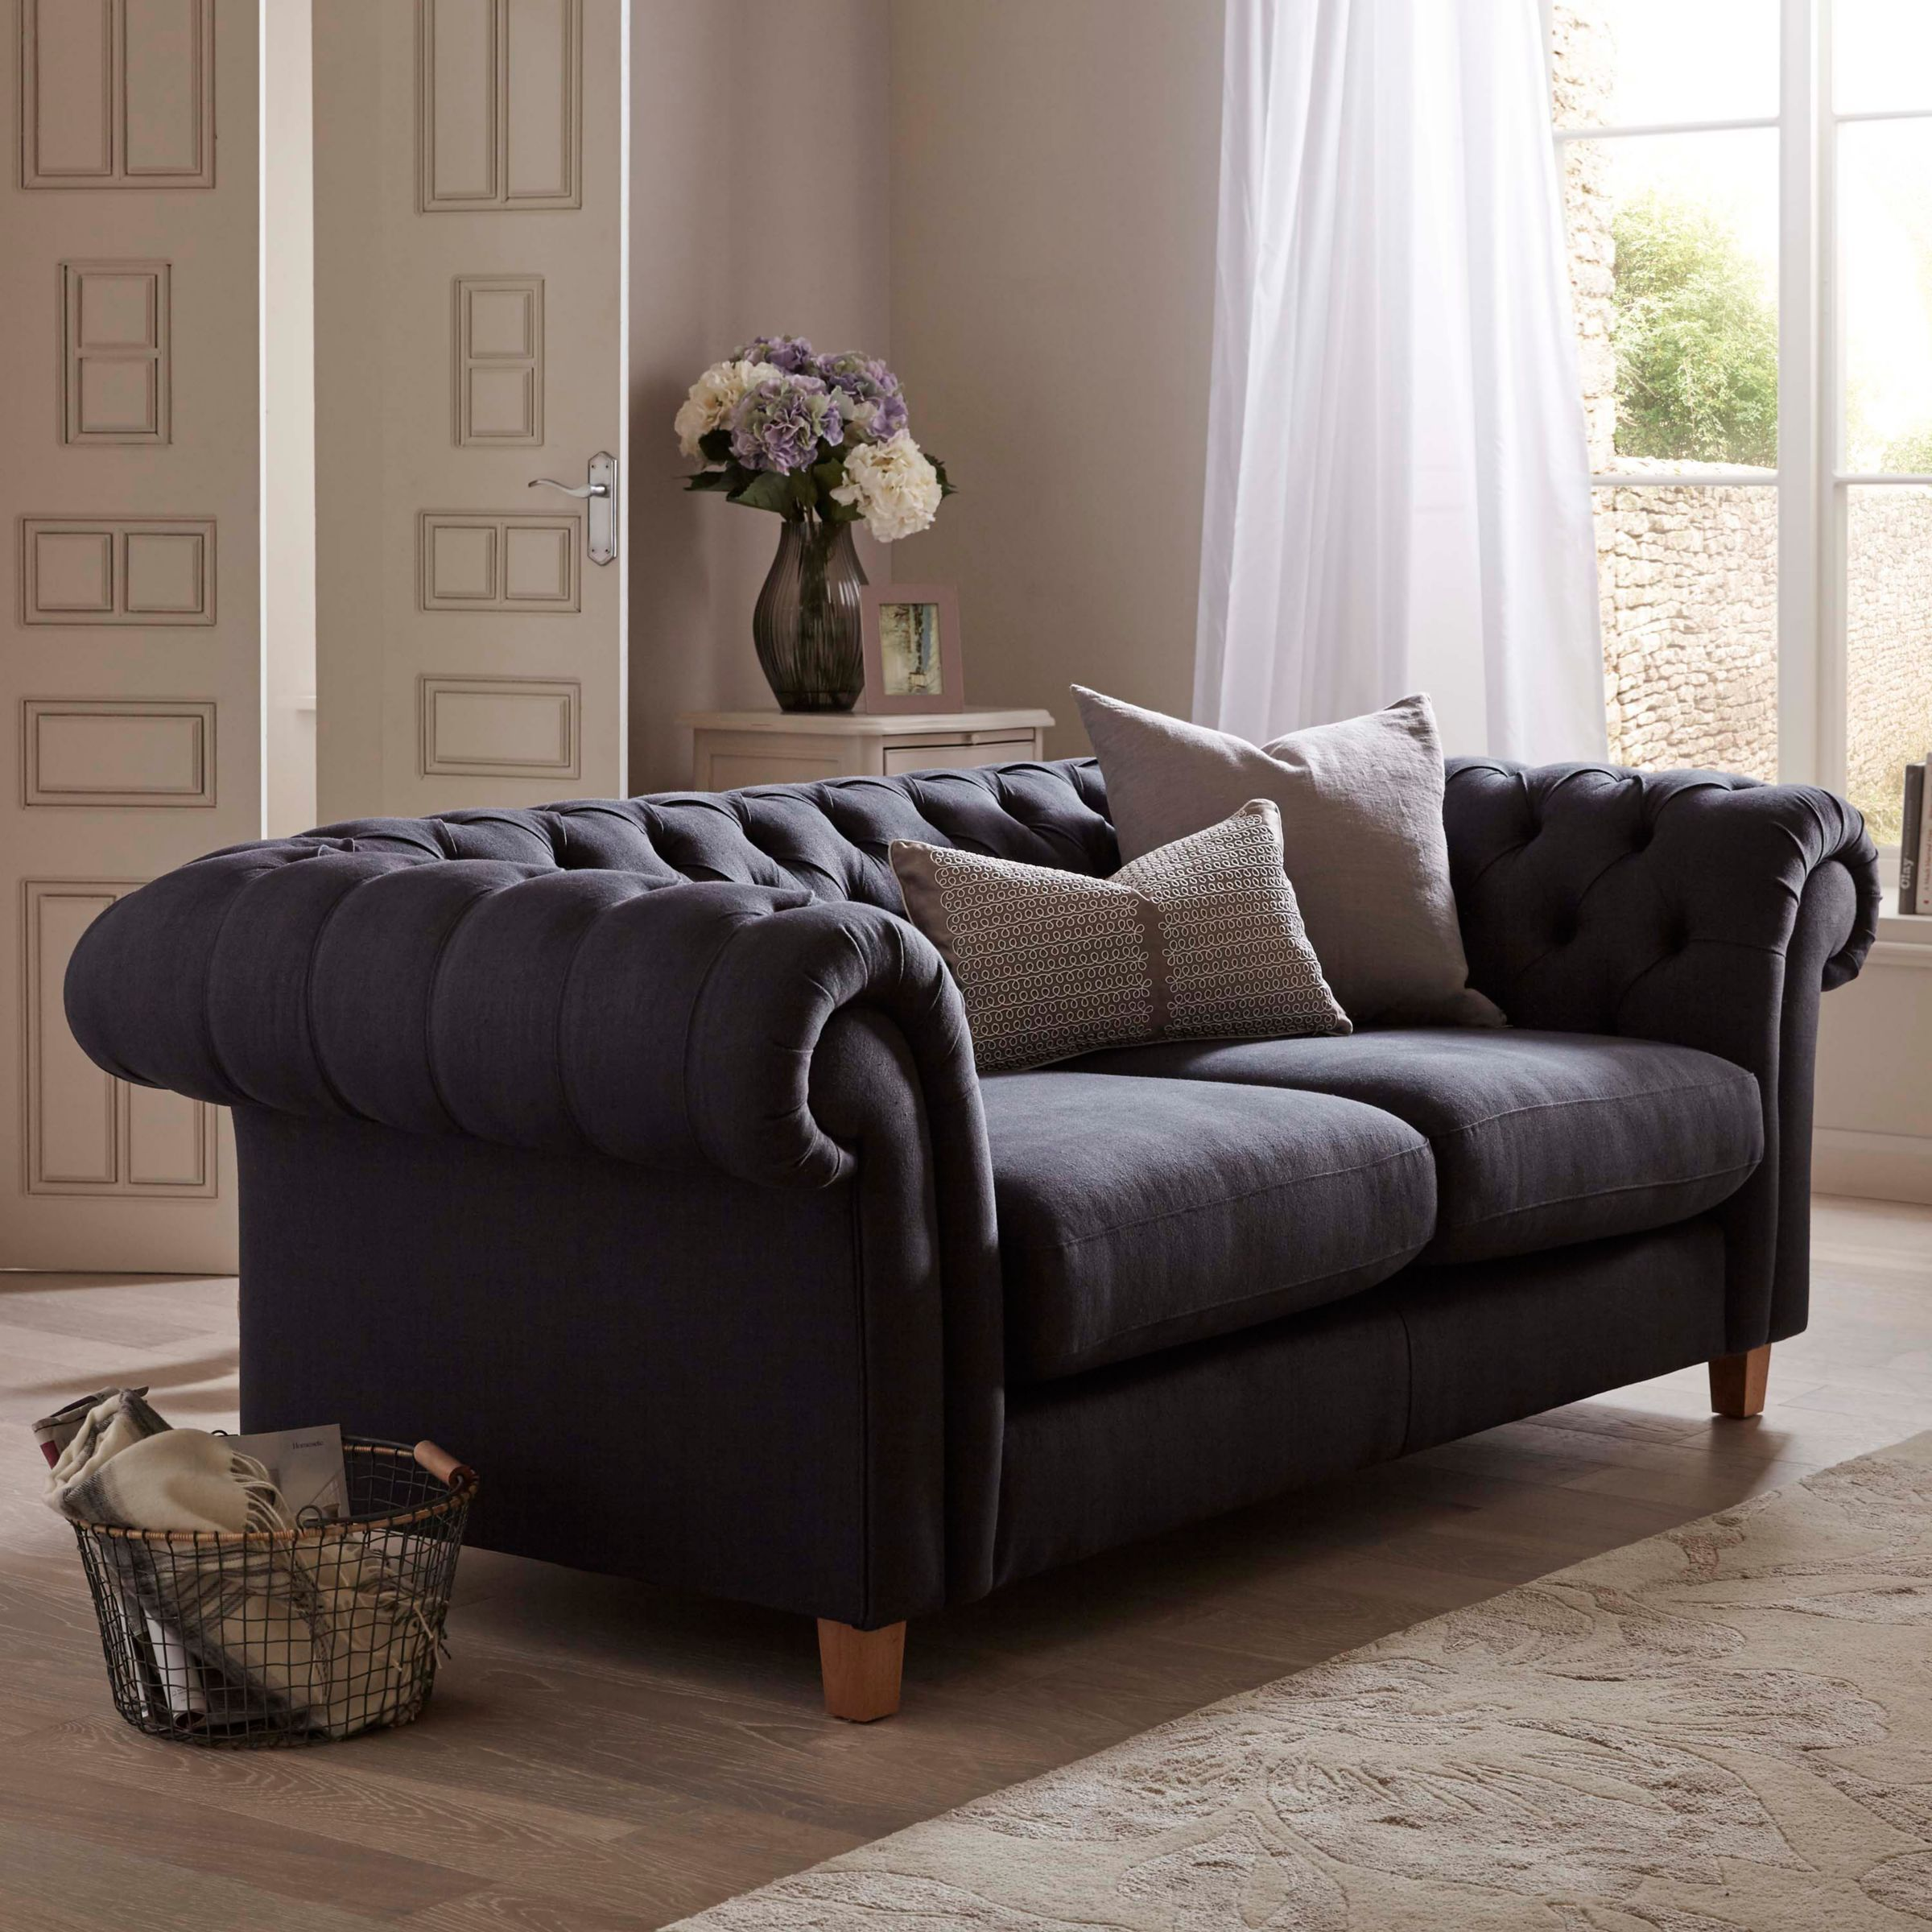 John Lewis Partners Cromwell Chesterfield Leather Large 3 Seater Sofa Light Leg Luster Cappucino Luster Cappucino Chesterfield Living Room Sofa Small Sofa